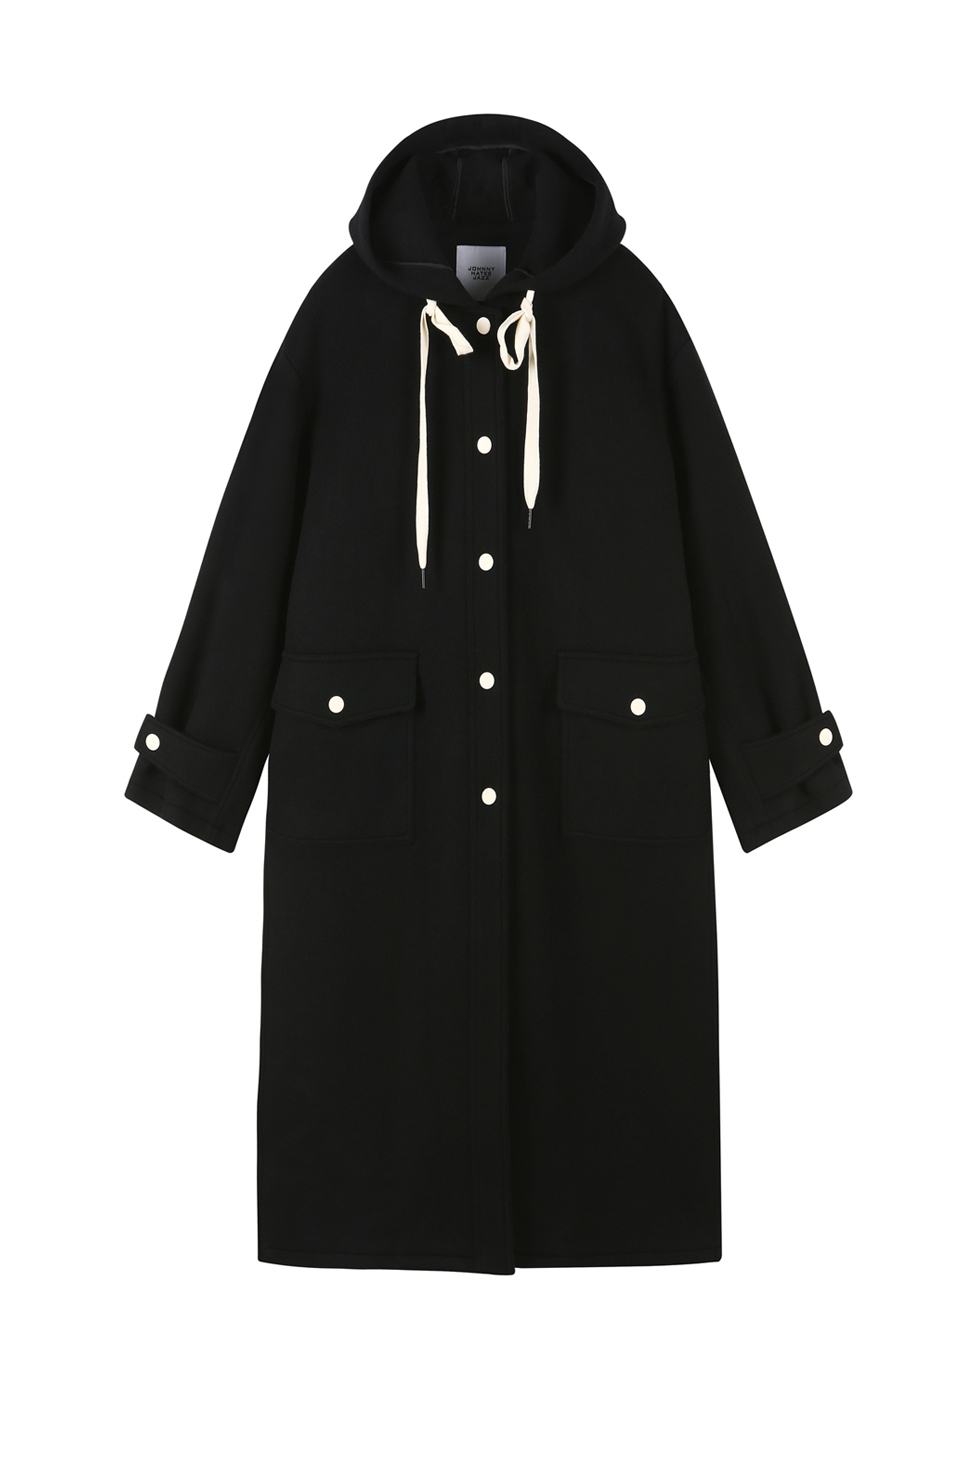 OVERSIZED HOOD COAT - BLACK